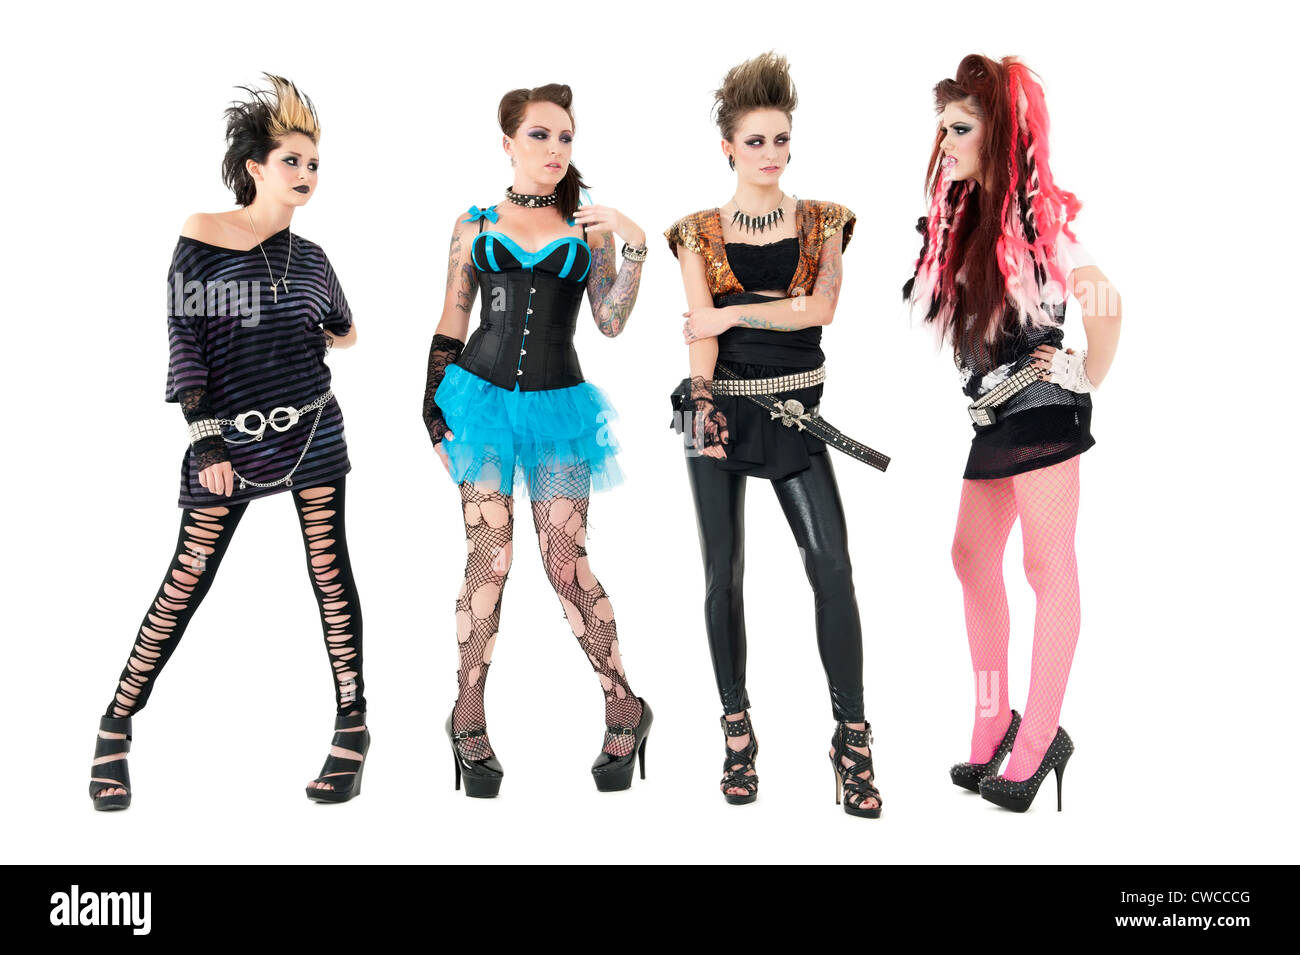 All female rock band members posing over white background - Stock Image